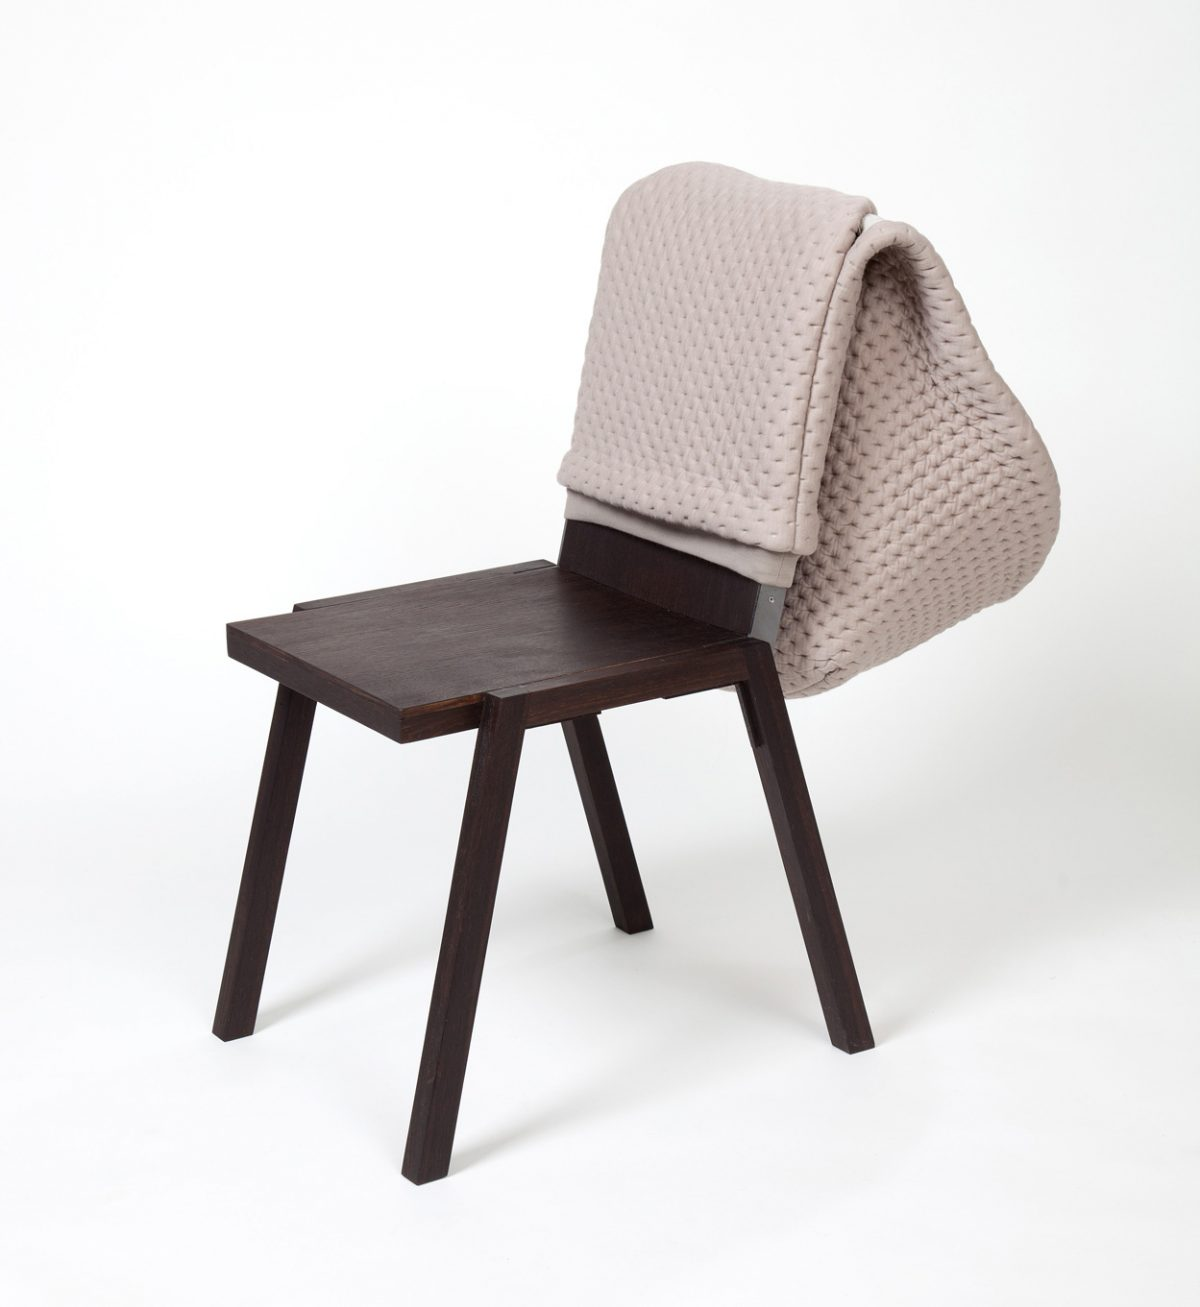 Chair Wear Hoodini Dutch design Bernotat & Co